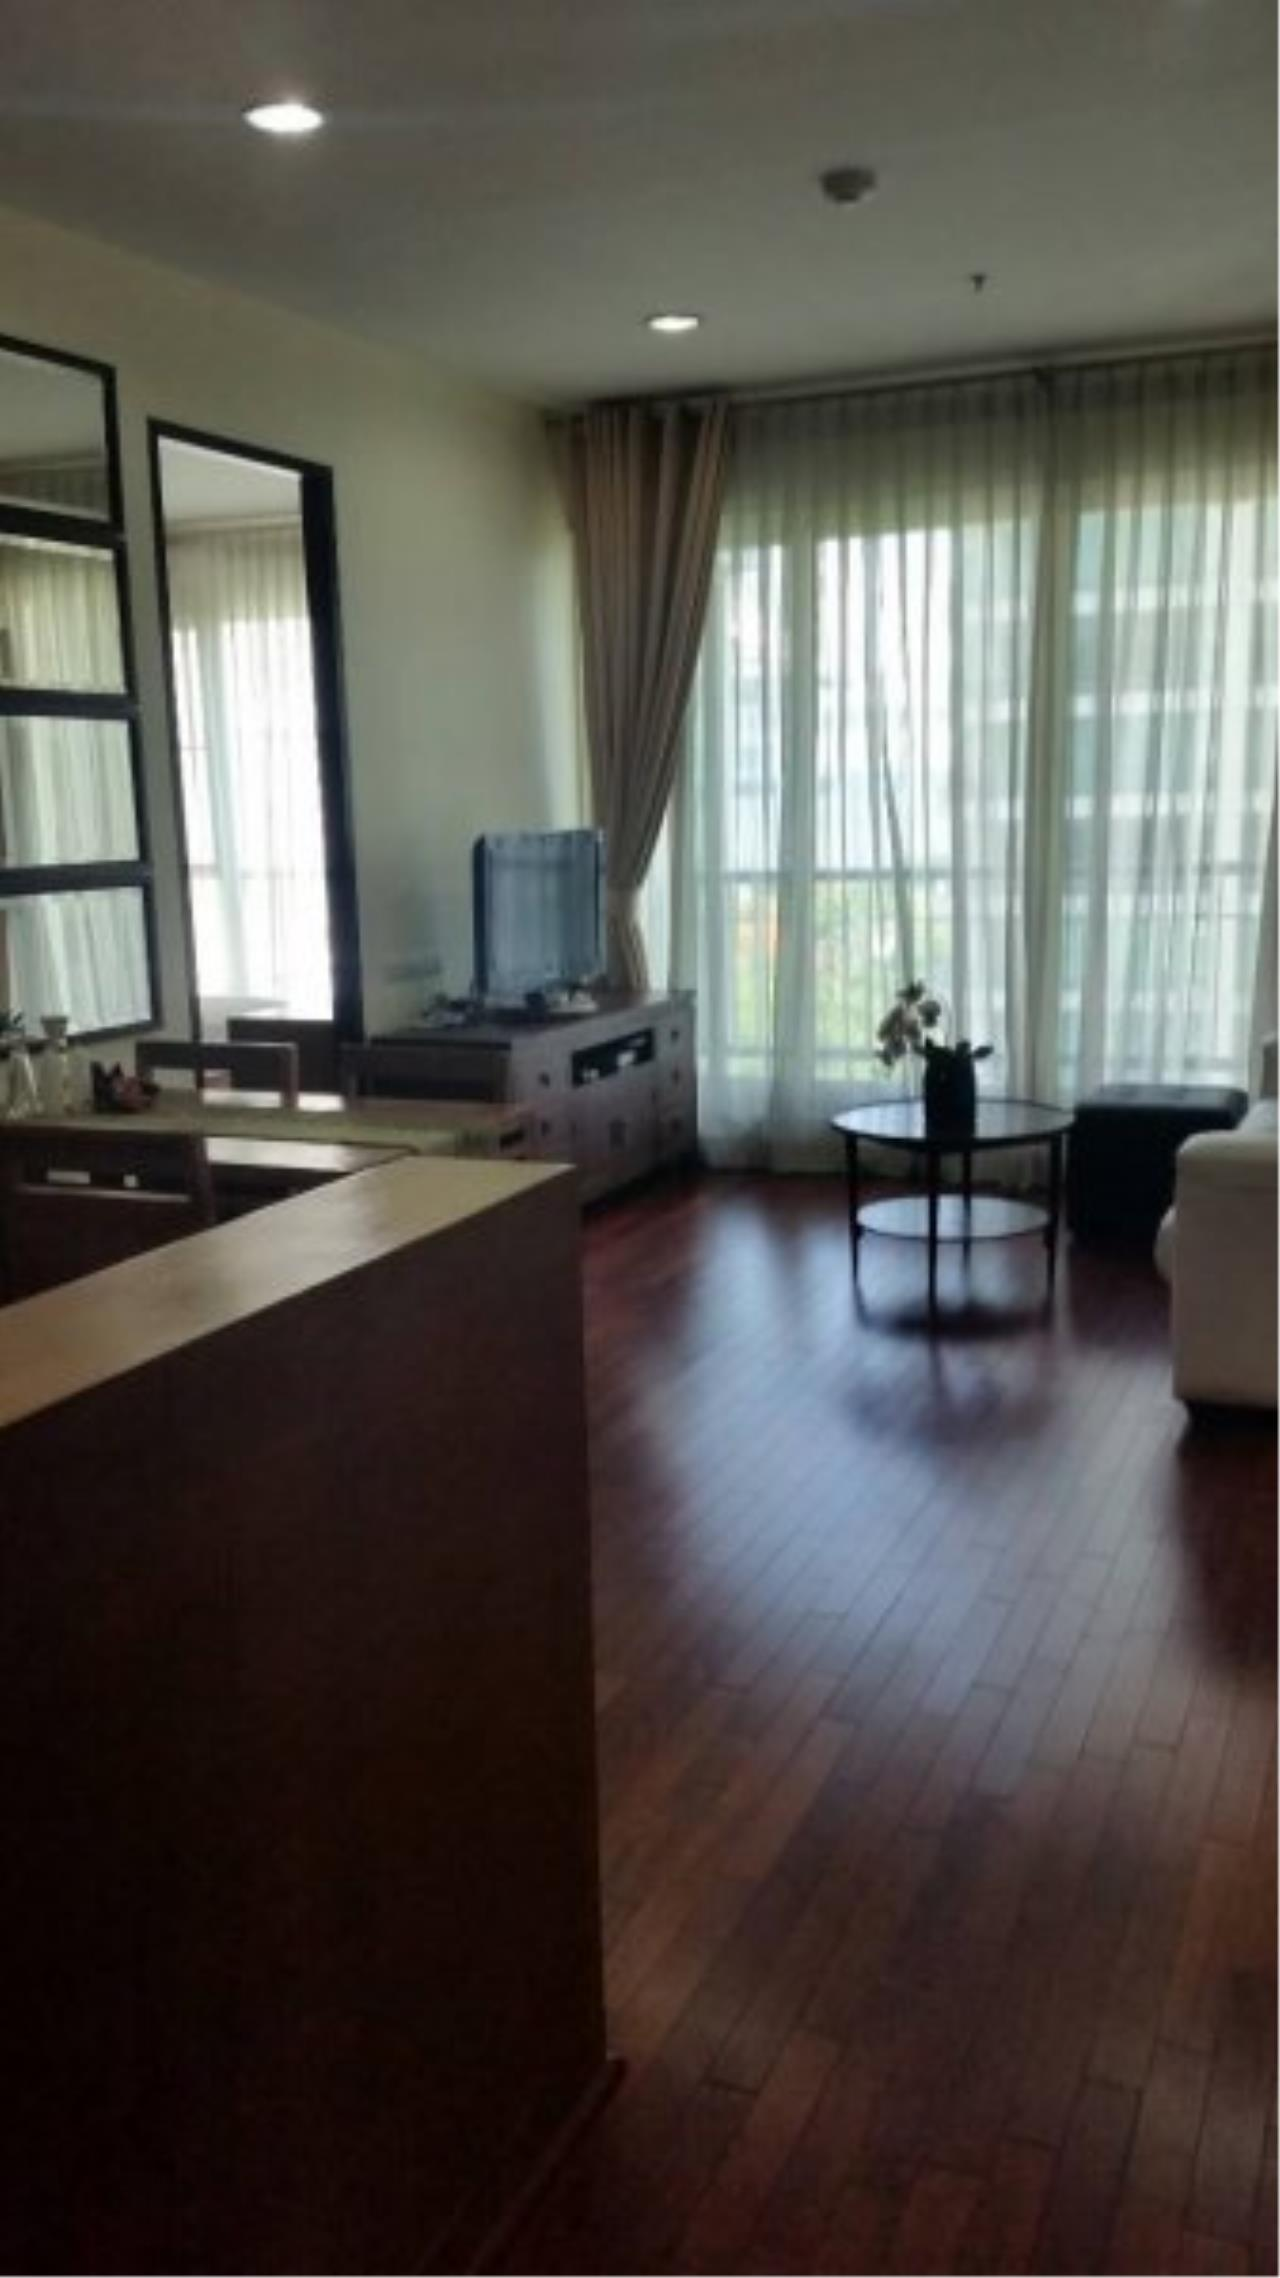 Piri Property Agency's Comfort 2 Bedrooms in The Address Chidlom Condo for rent 4